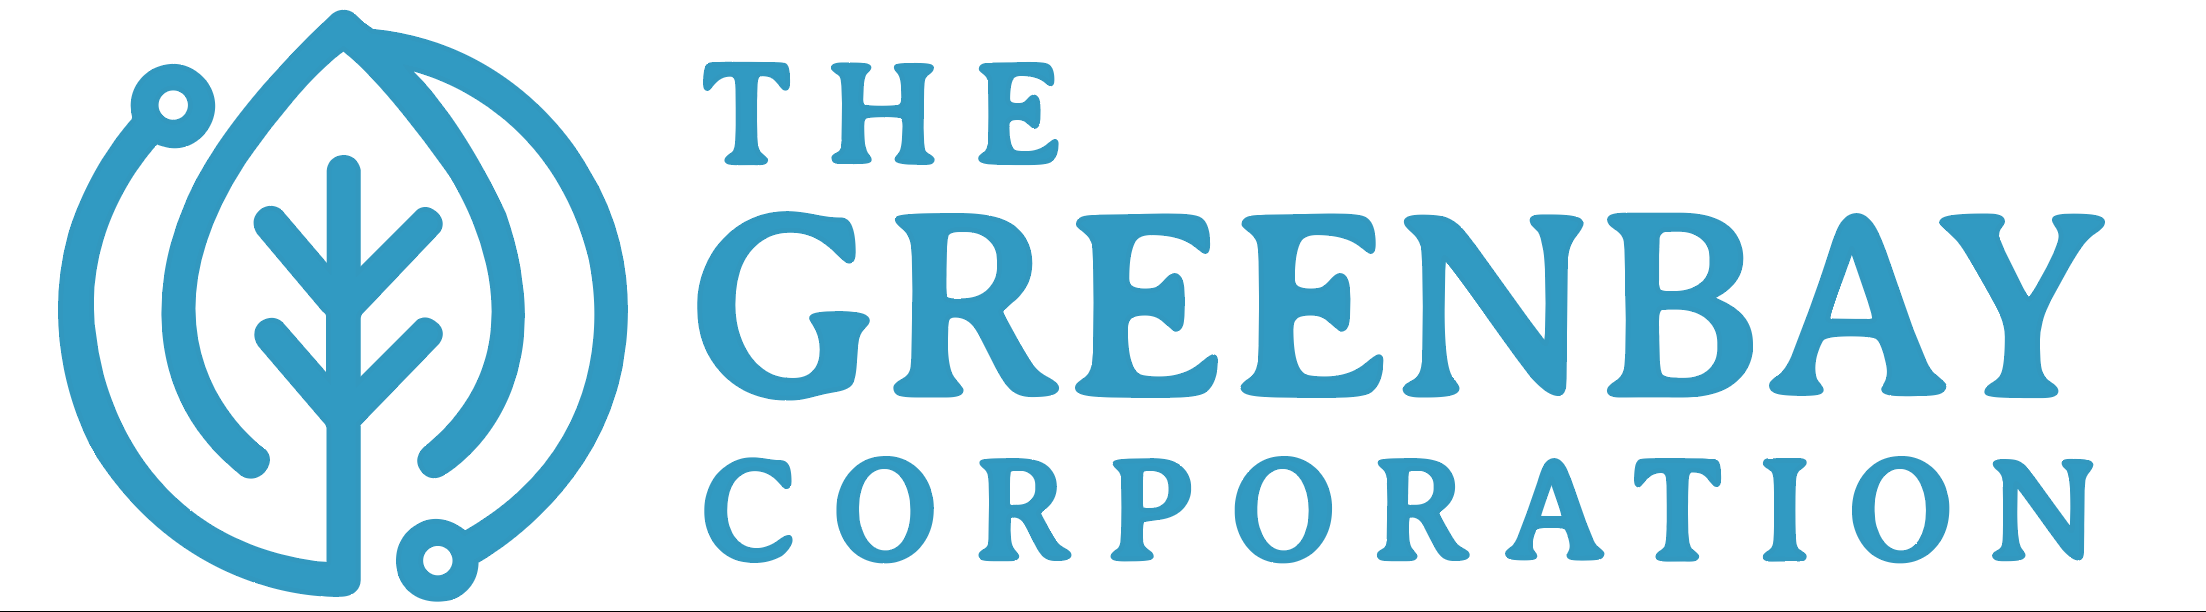 The Greenbay Corporation (Pty) Ltd